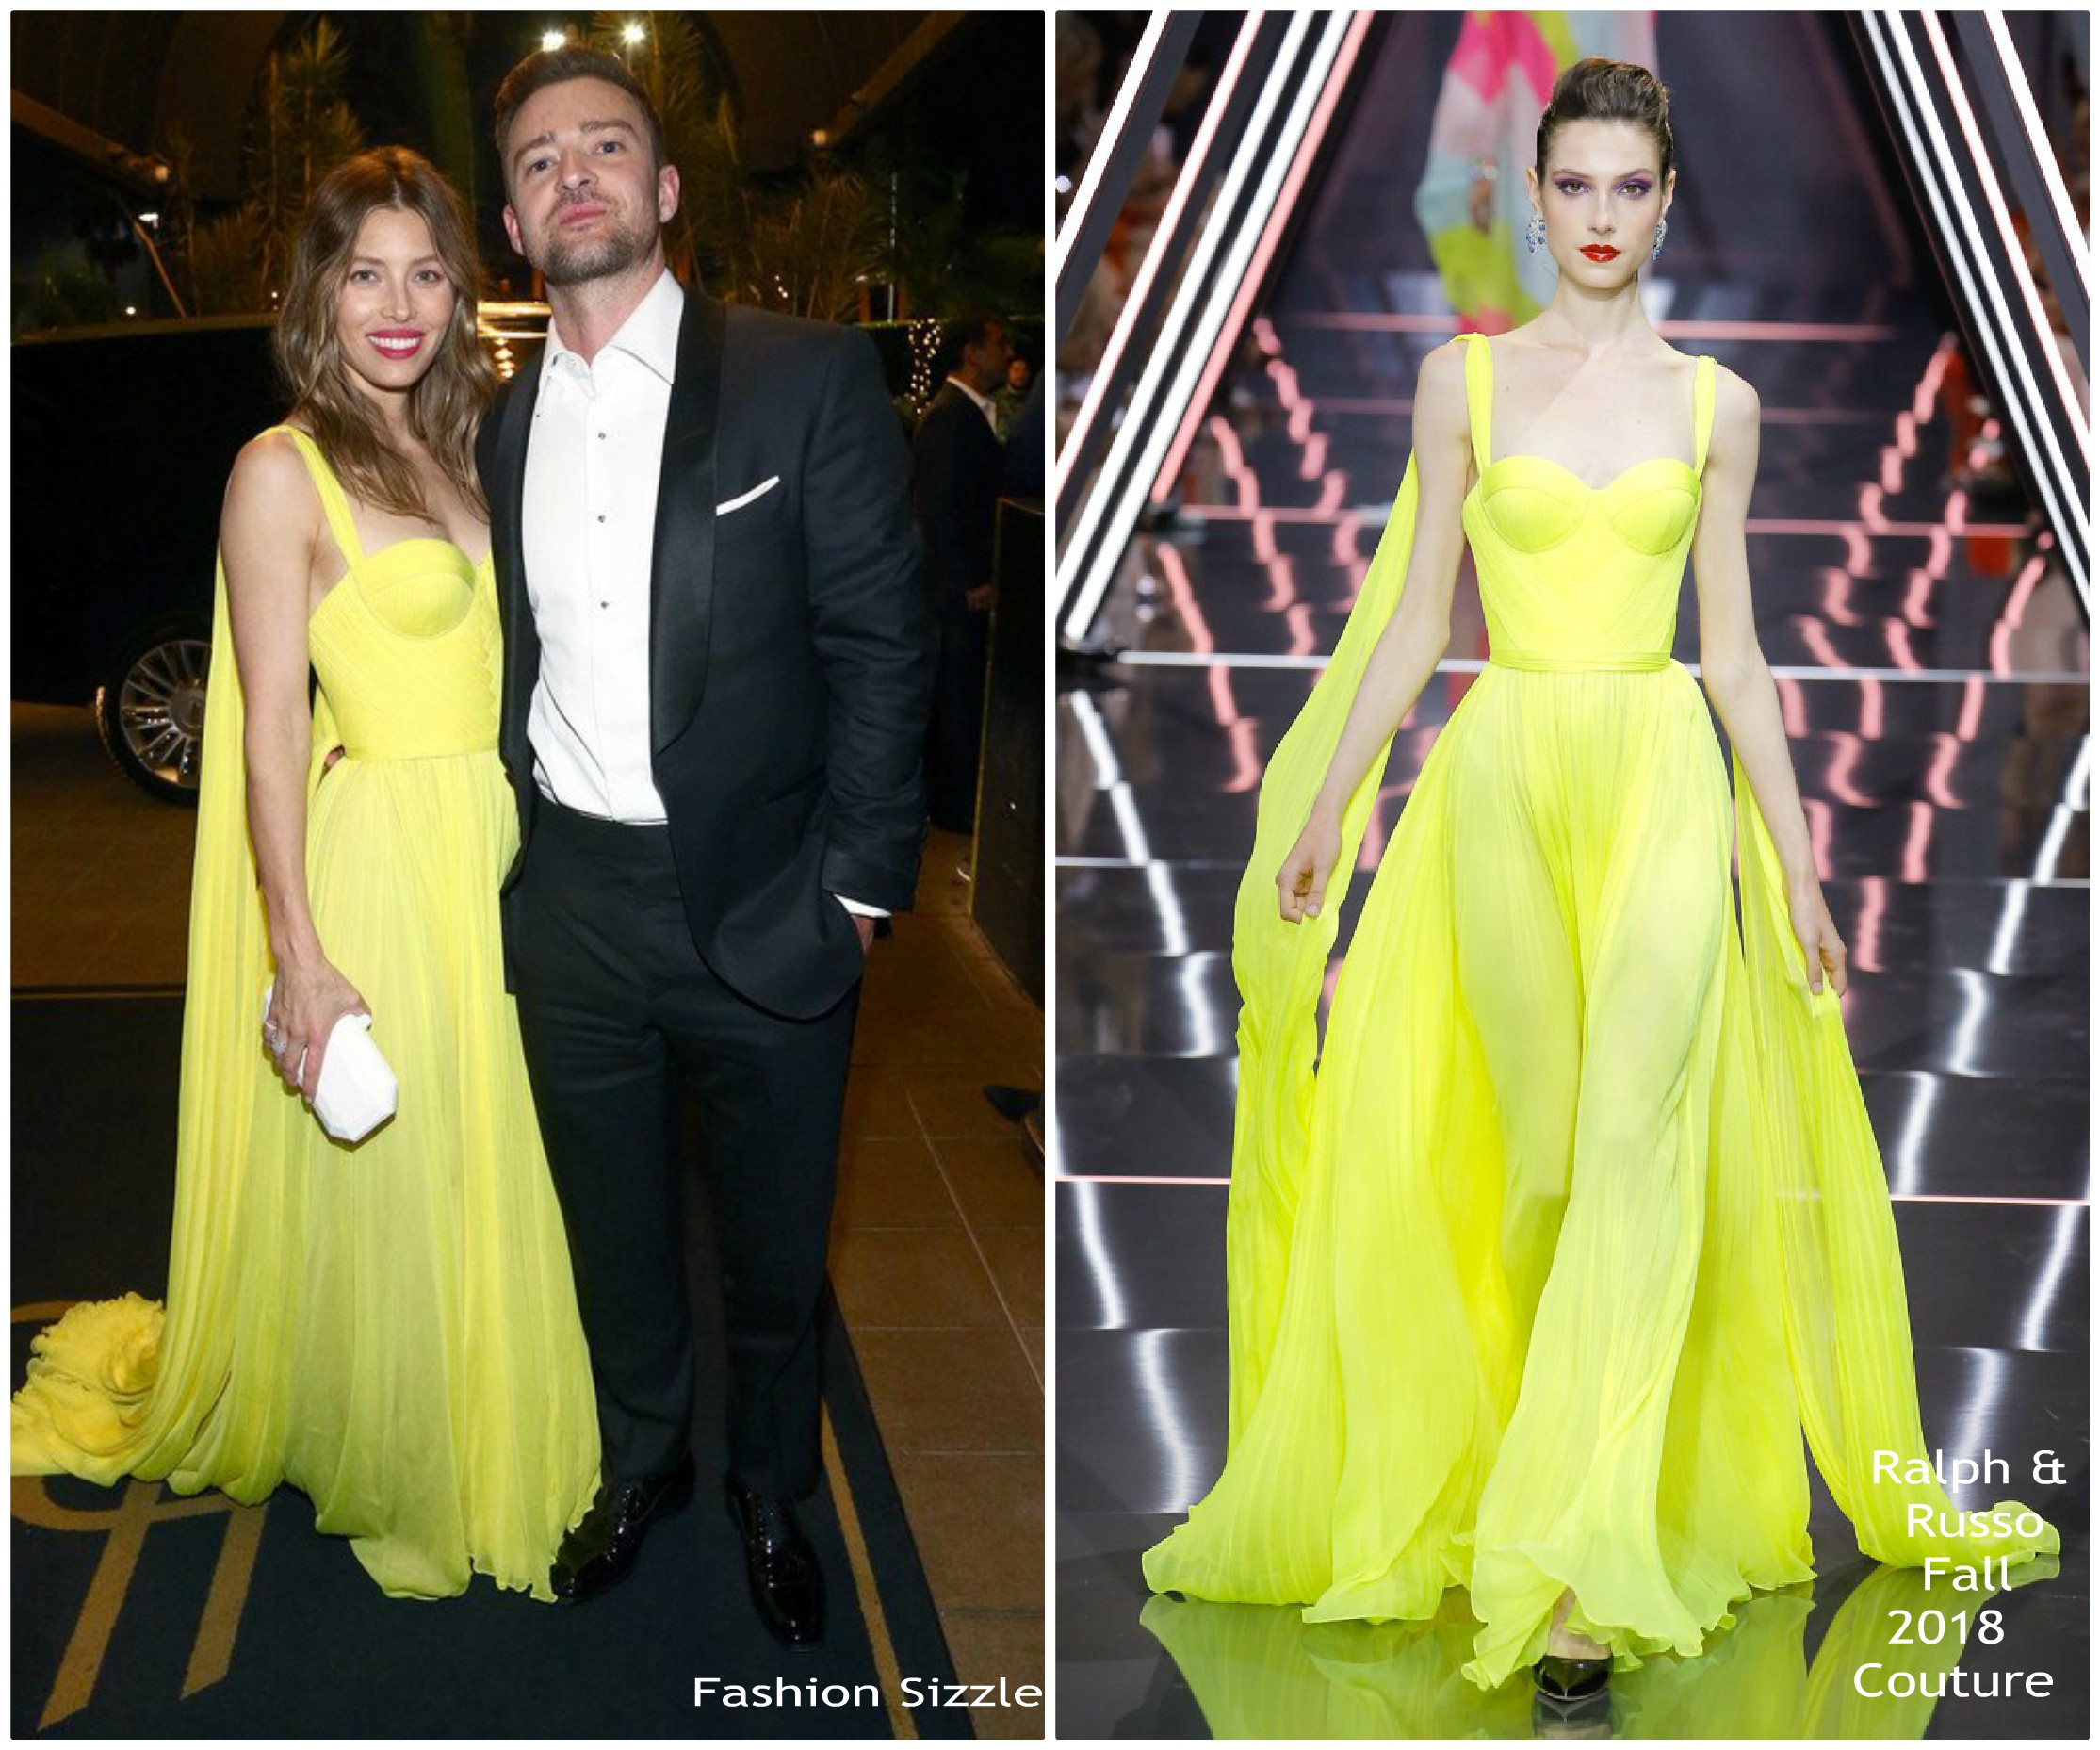 jessica-biel-in-ralph-russo-couture-michael-che-colin-josts-emmys-after-party